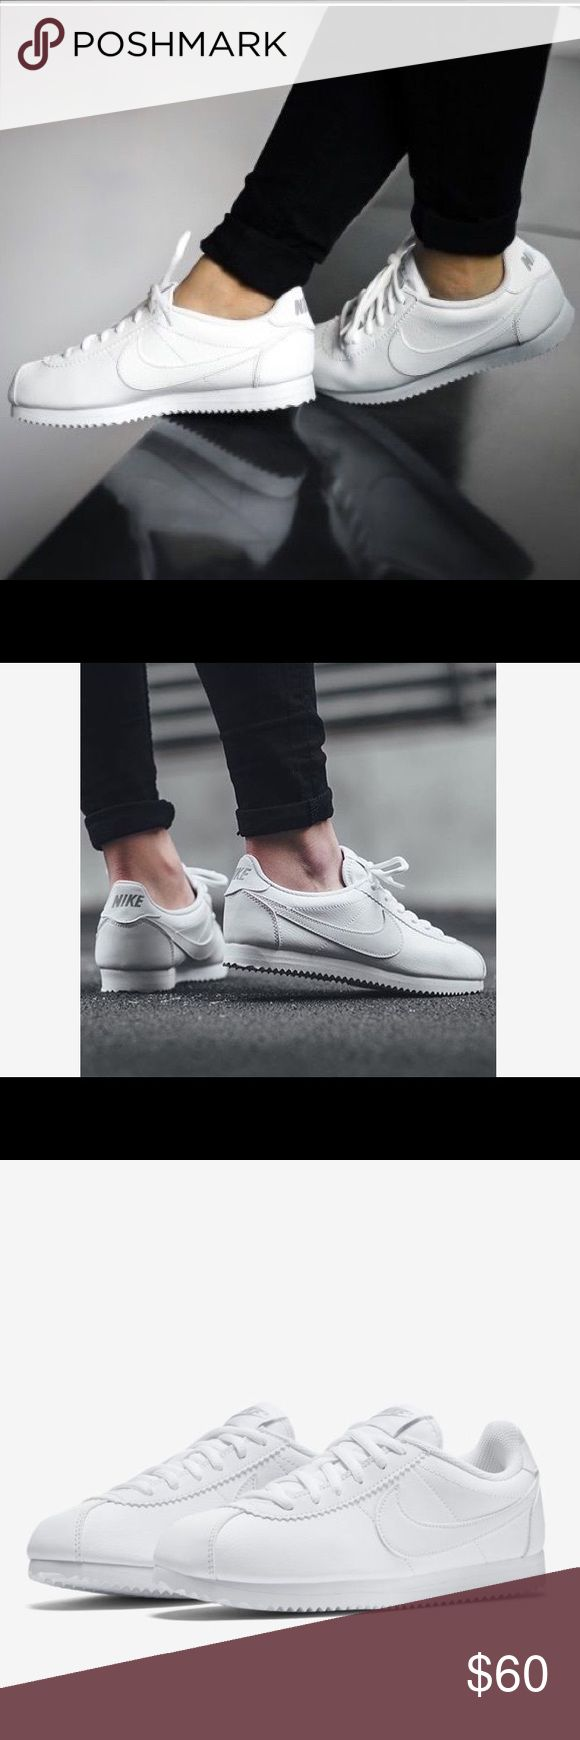 NIKE CORTEZ WOMENS WHITE SHOES Shoes are a size 7 youth. Which is a size 8.5 Womens. New without box Nike Shoes Sneakers